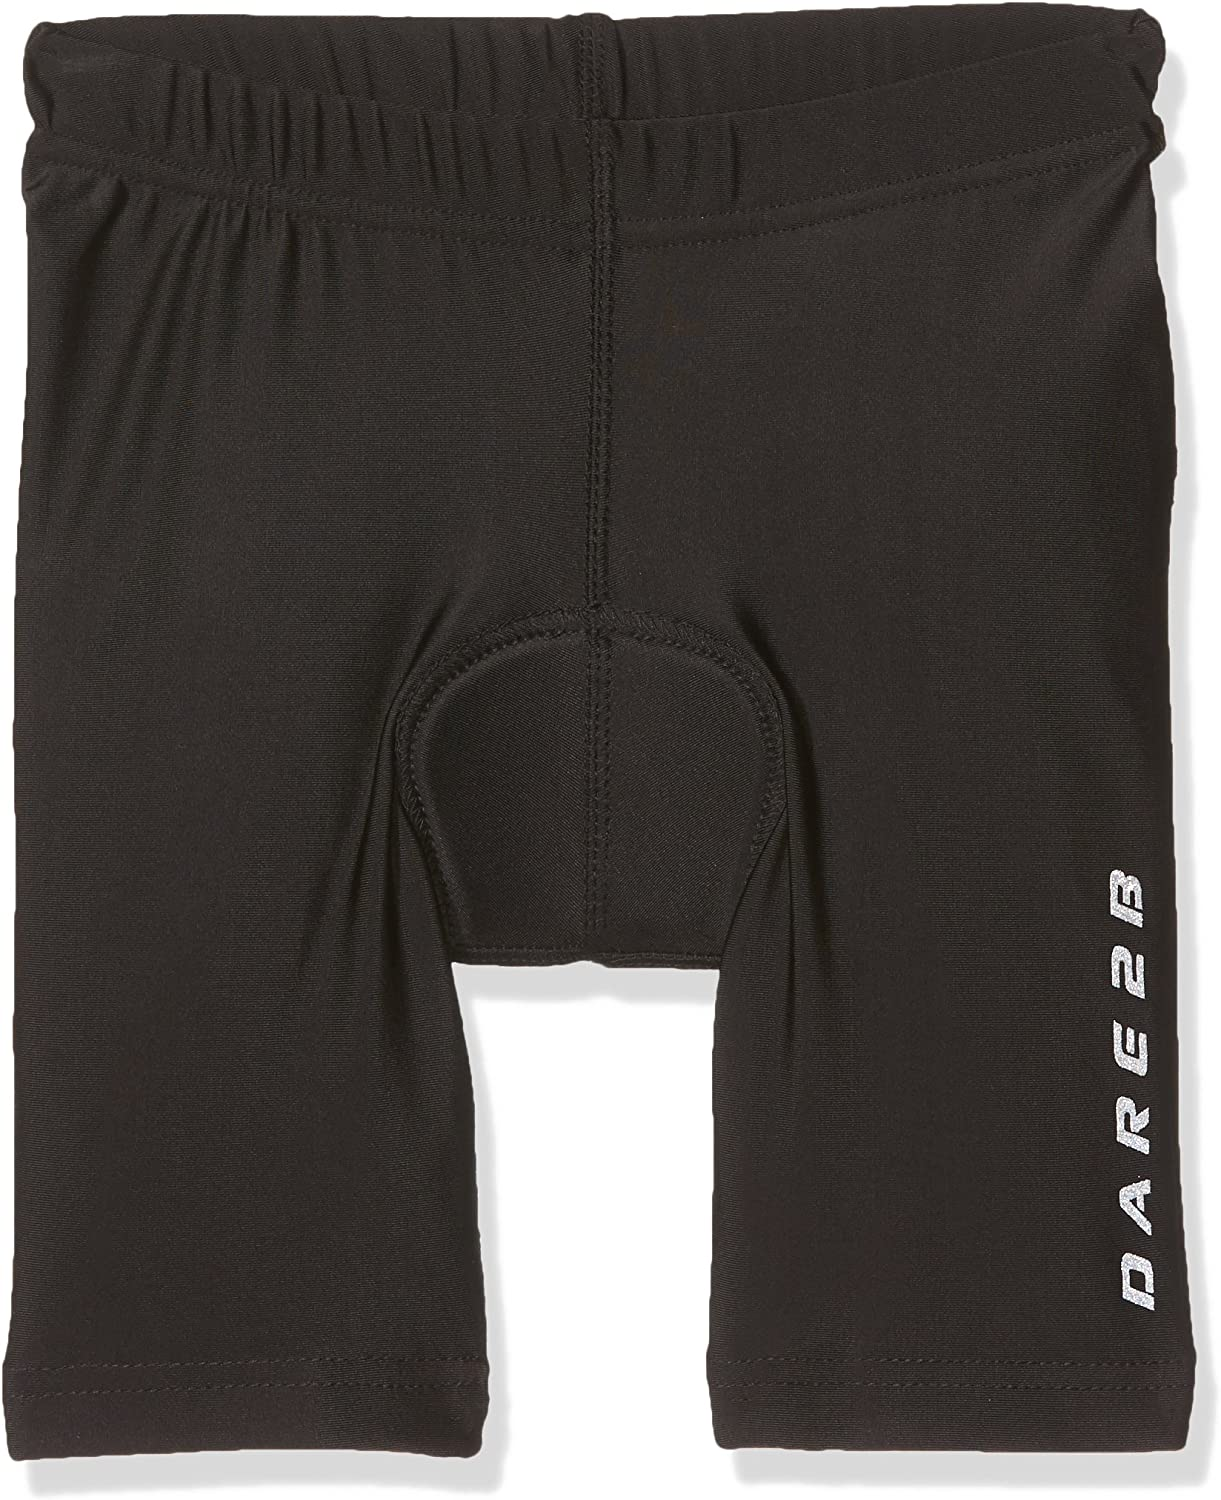 Dare 2b Boys Stay Seated Cycle Shorts